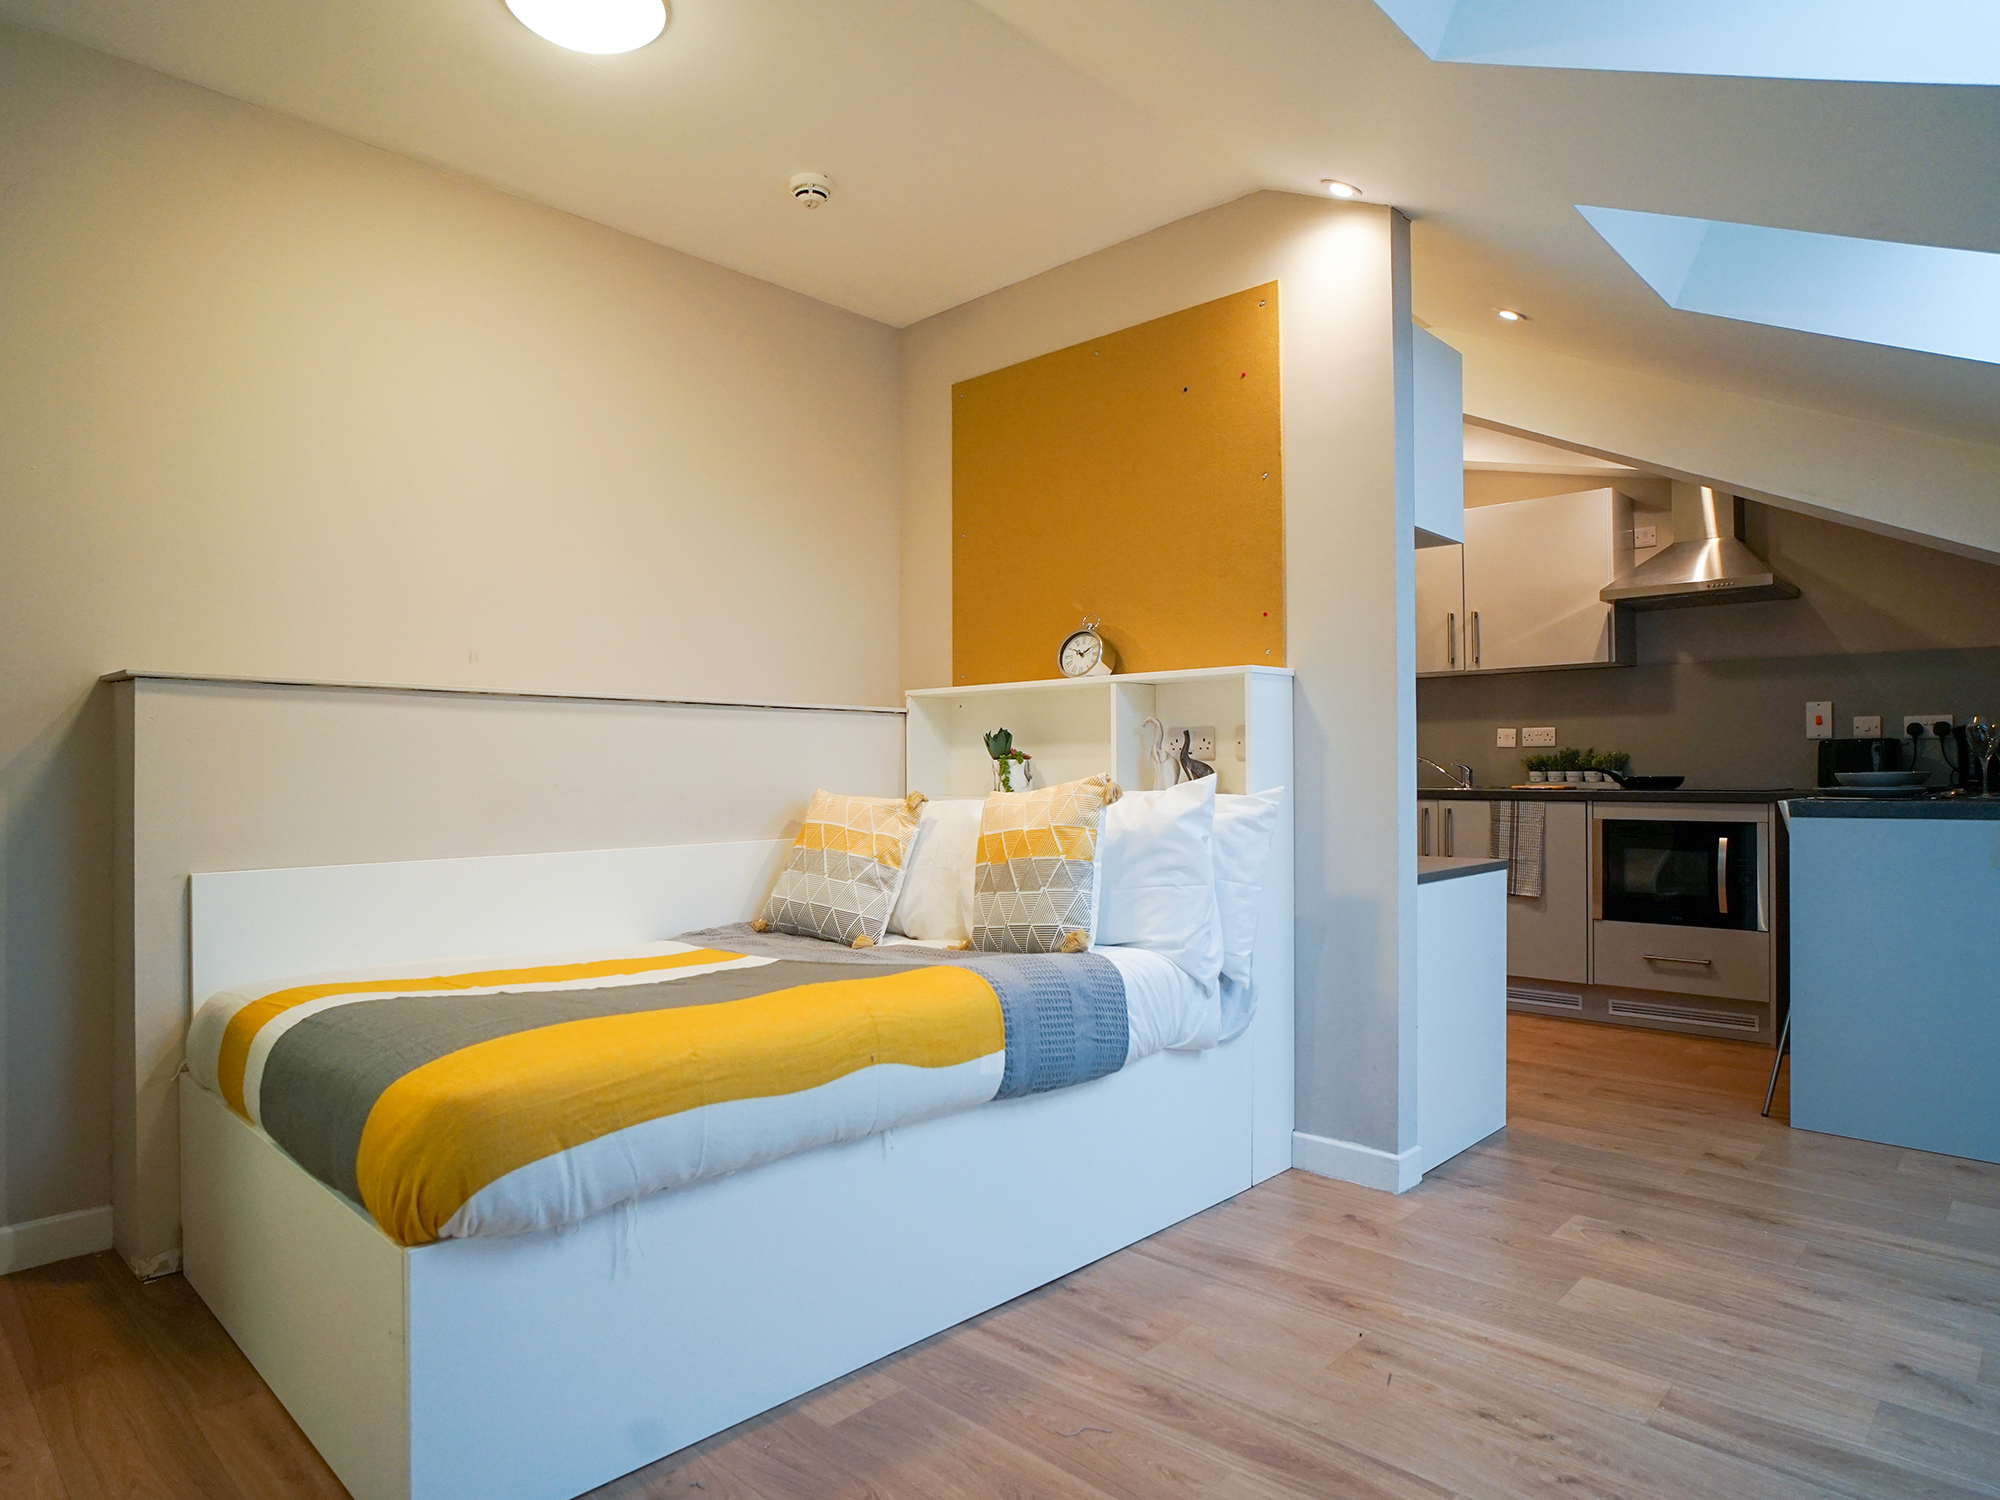 private bedroom area centro house student accommodation Stirling